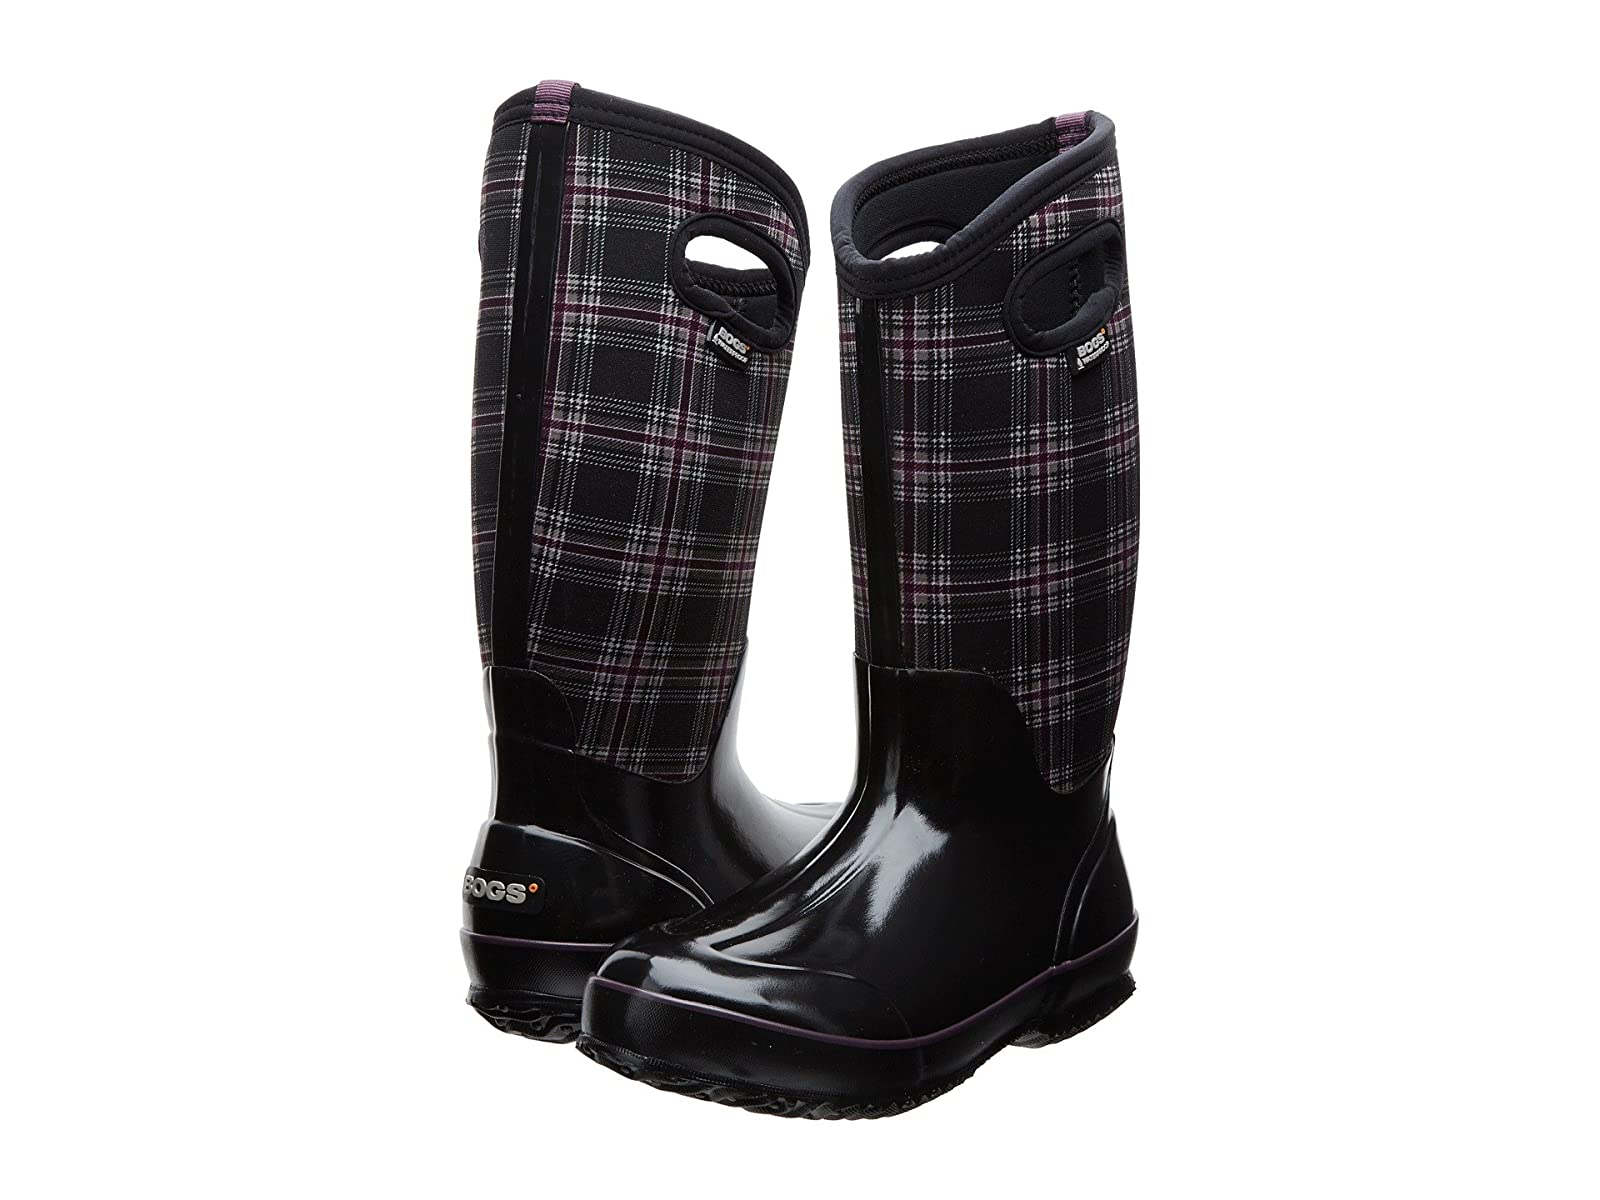 Bogs Bogs Bogs Classic Winter Plaid Tall 05c7f0